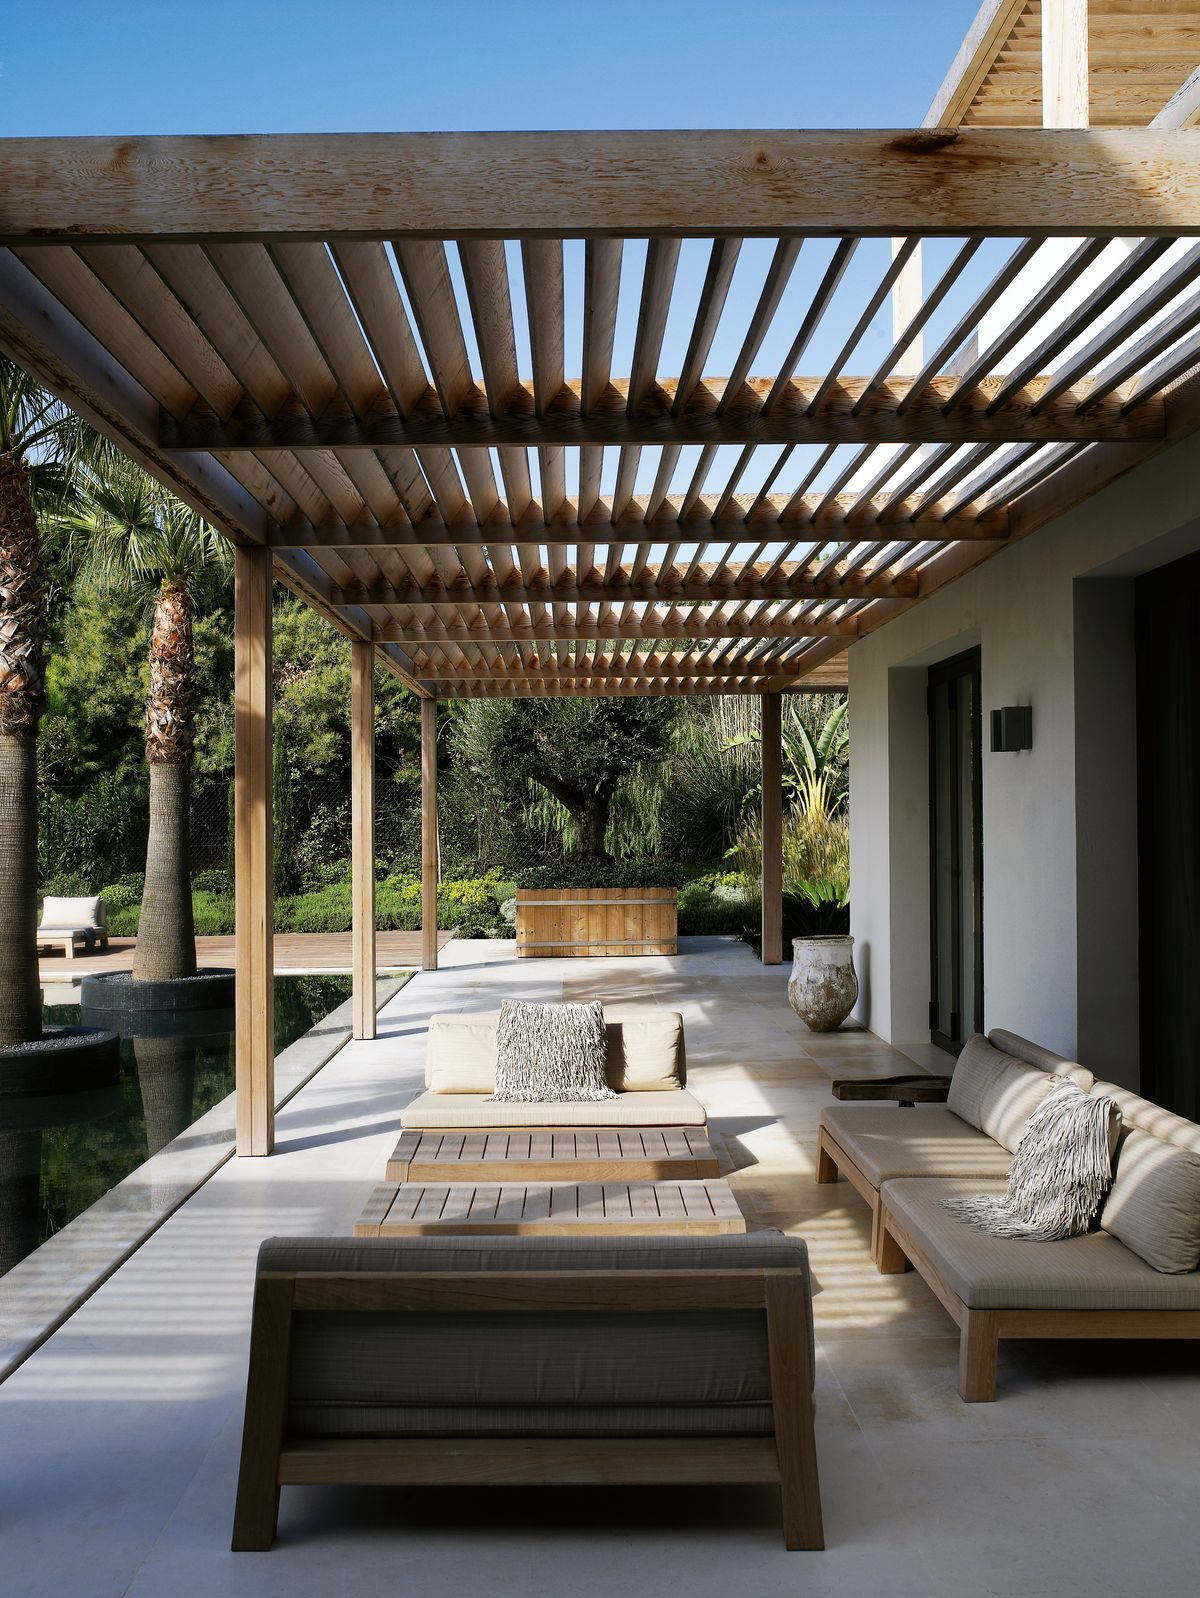 Pinned To Garden Design   Pergolas By Darin Bradbury.